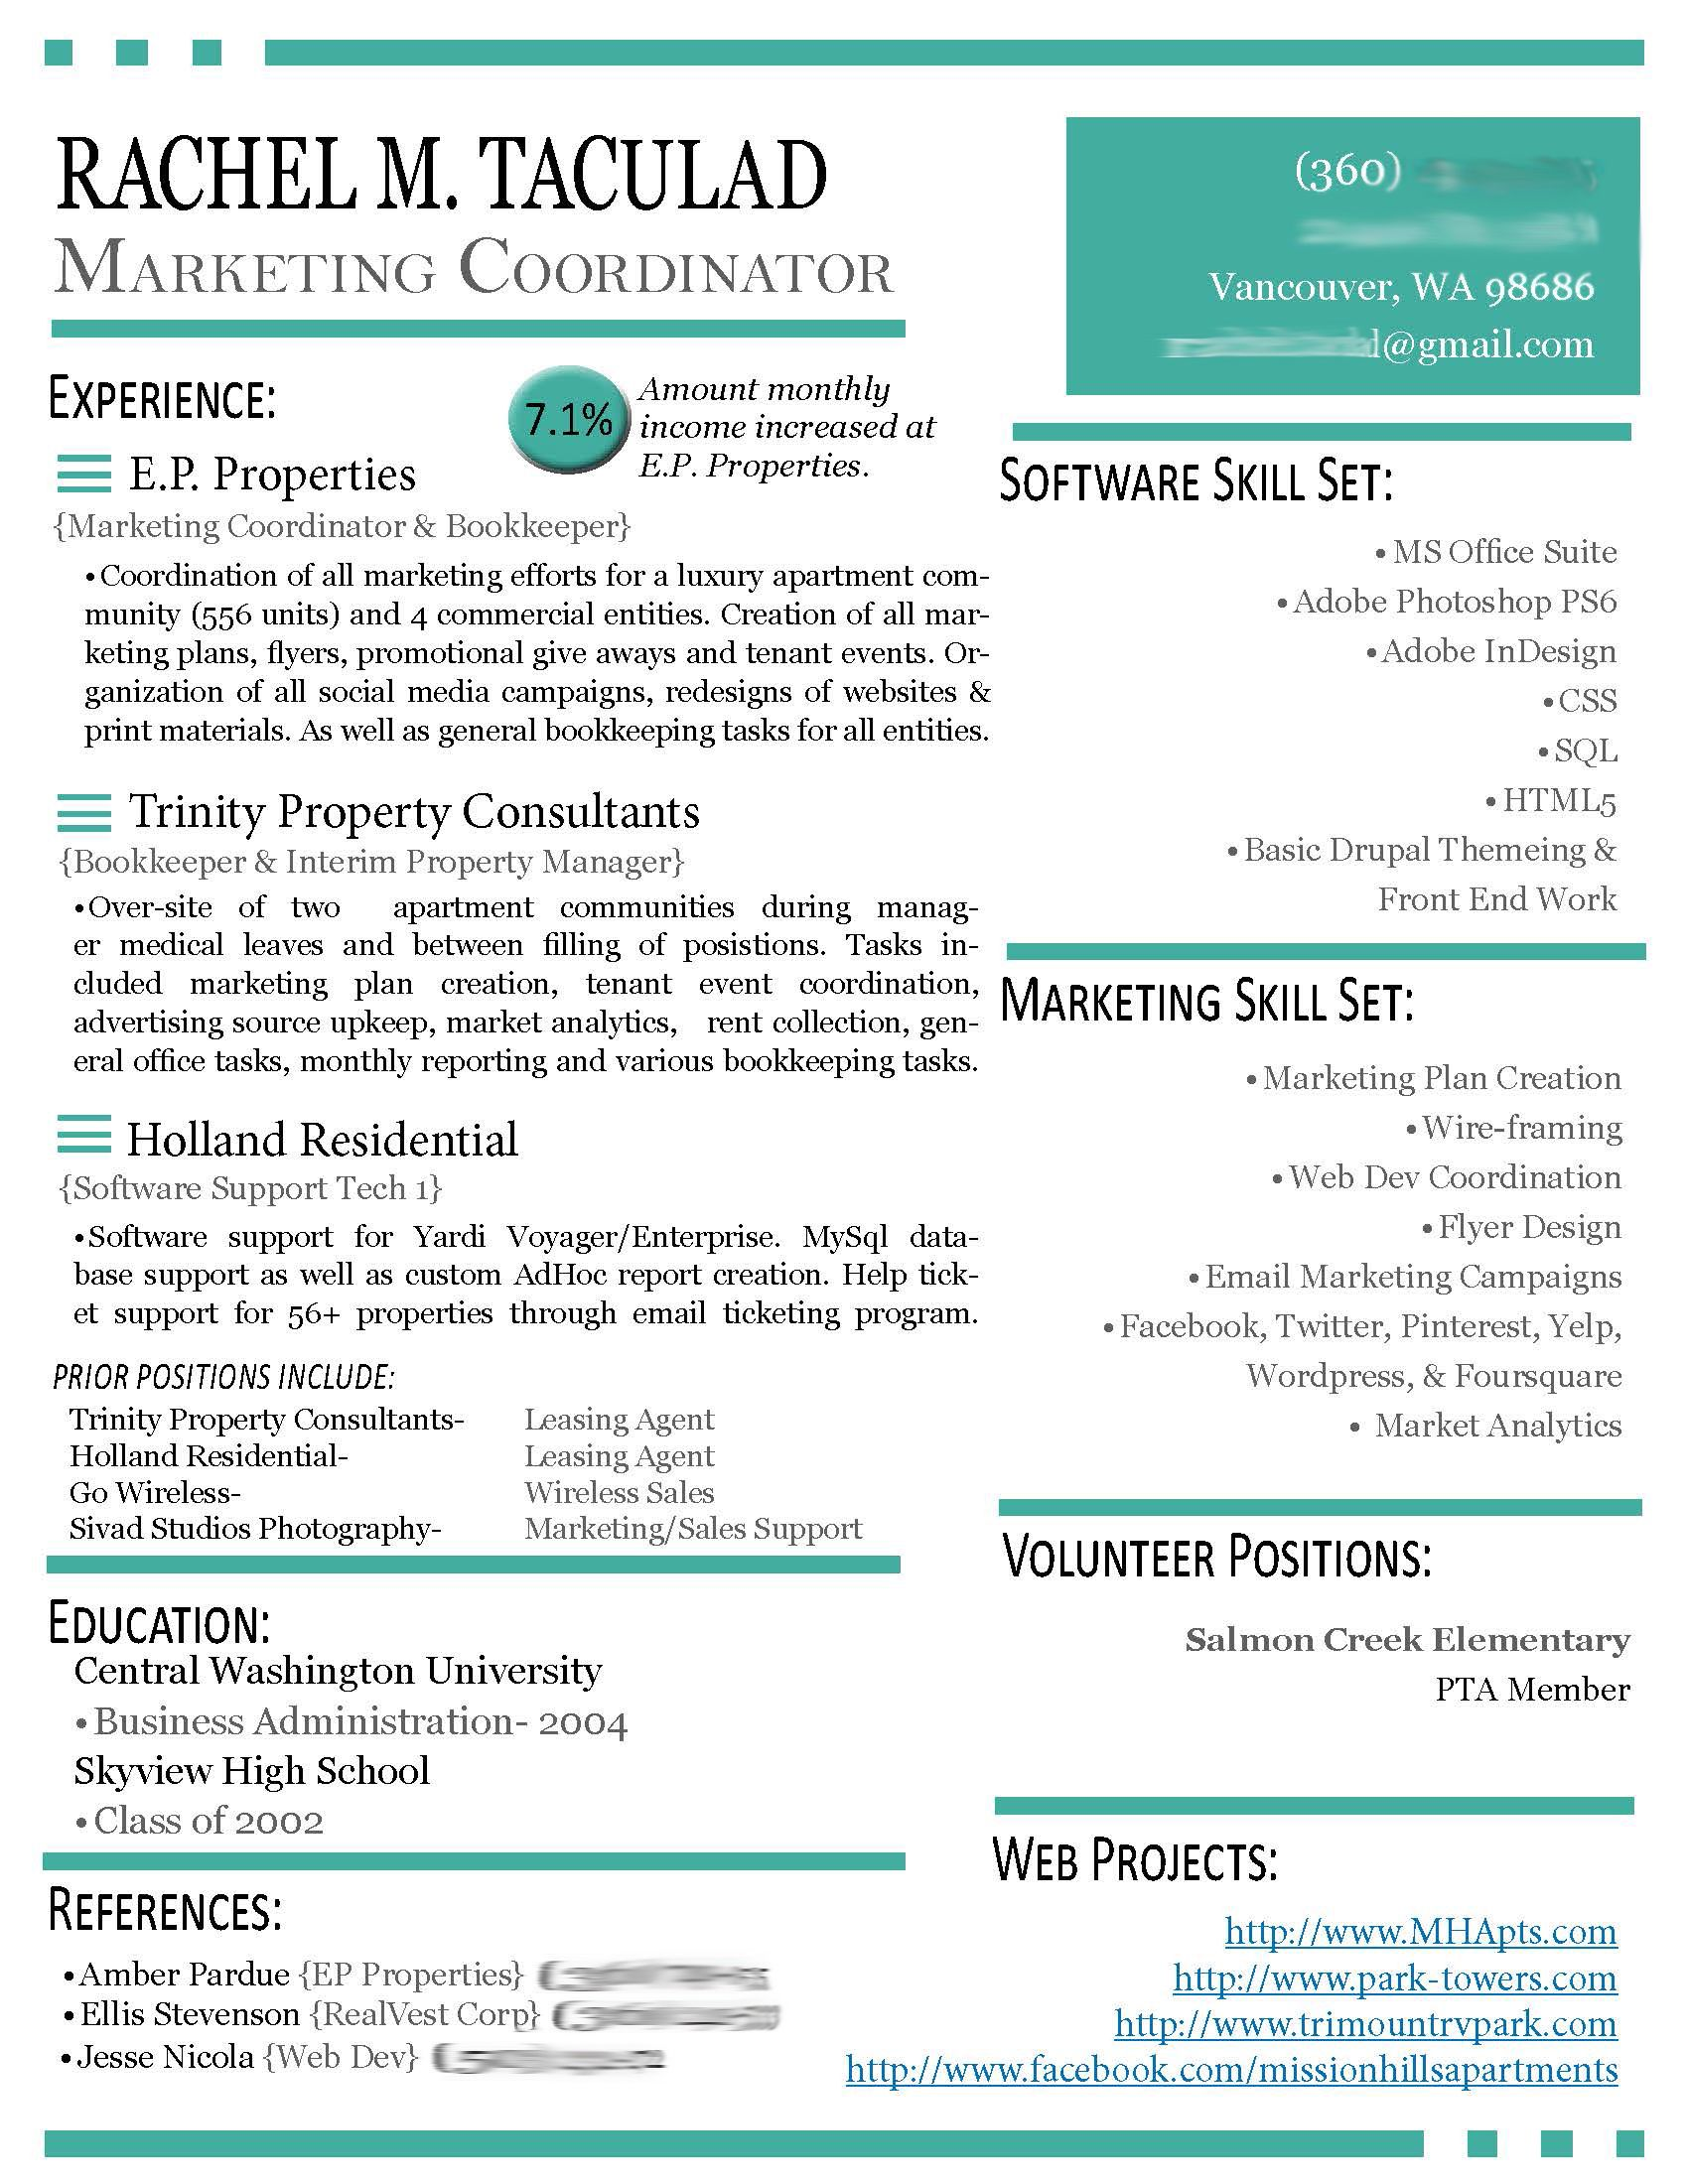 Opposenewapstandardsus  Unusual  Images About Work Stuff On Pinterest  Resume Professional  With Hot  Images About Work Stuff On Pinterest  Resume Professional Resume Template And Resume Templates With Lovely Traditional Resume Format Also Disney Resume In Addition Quality Assurance Resume Sample And Resume Template For Internship As Well As How To Make A Resume Template Additionally How To Write A Reference Page For A Resume From Pinterestcom With Opposenewapstandardsus  Hot  Images About Work Stuff On Pinterest  Resume Professional  With Lovely  Images About Work Stuff On Pinterest  Resume Professional Resume Template And Resume Templates And Unusual Traditional Resume Format Also Disney Resume In Addition Quality Assurance Resume Sample From Pinterestcom